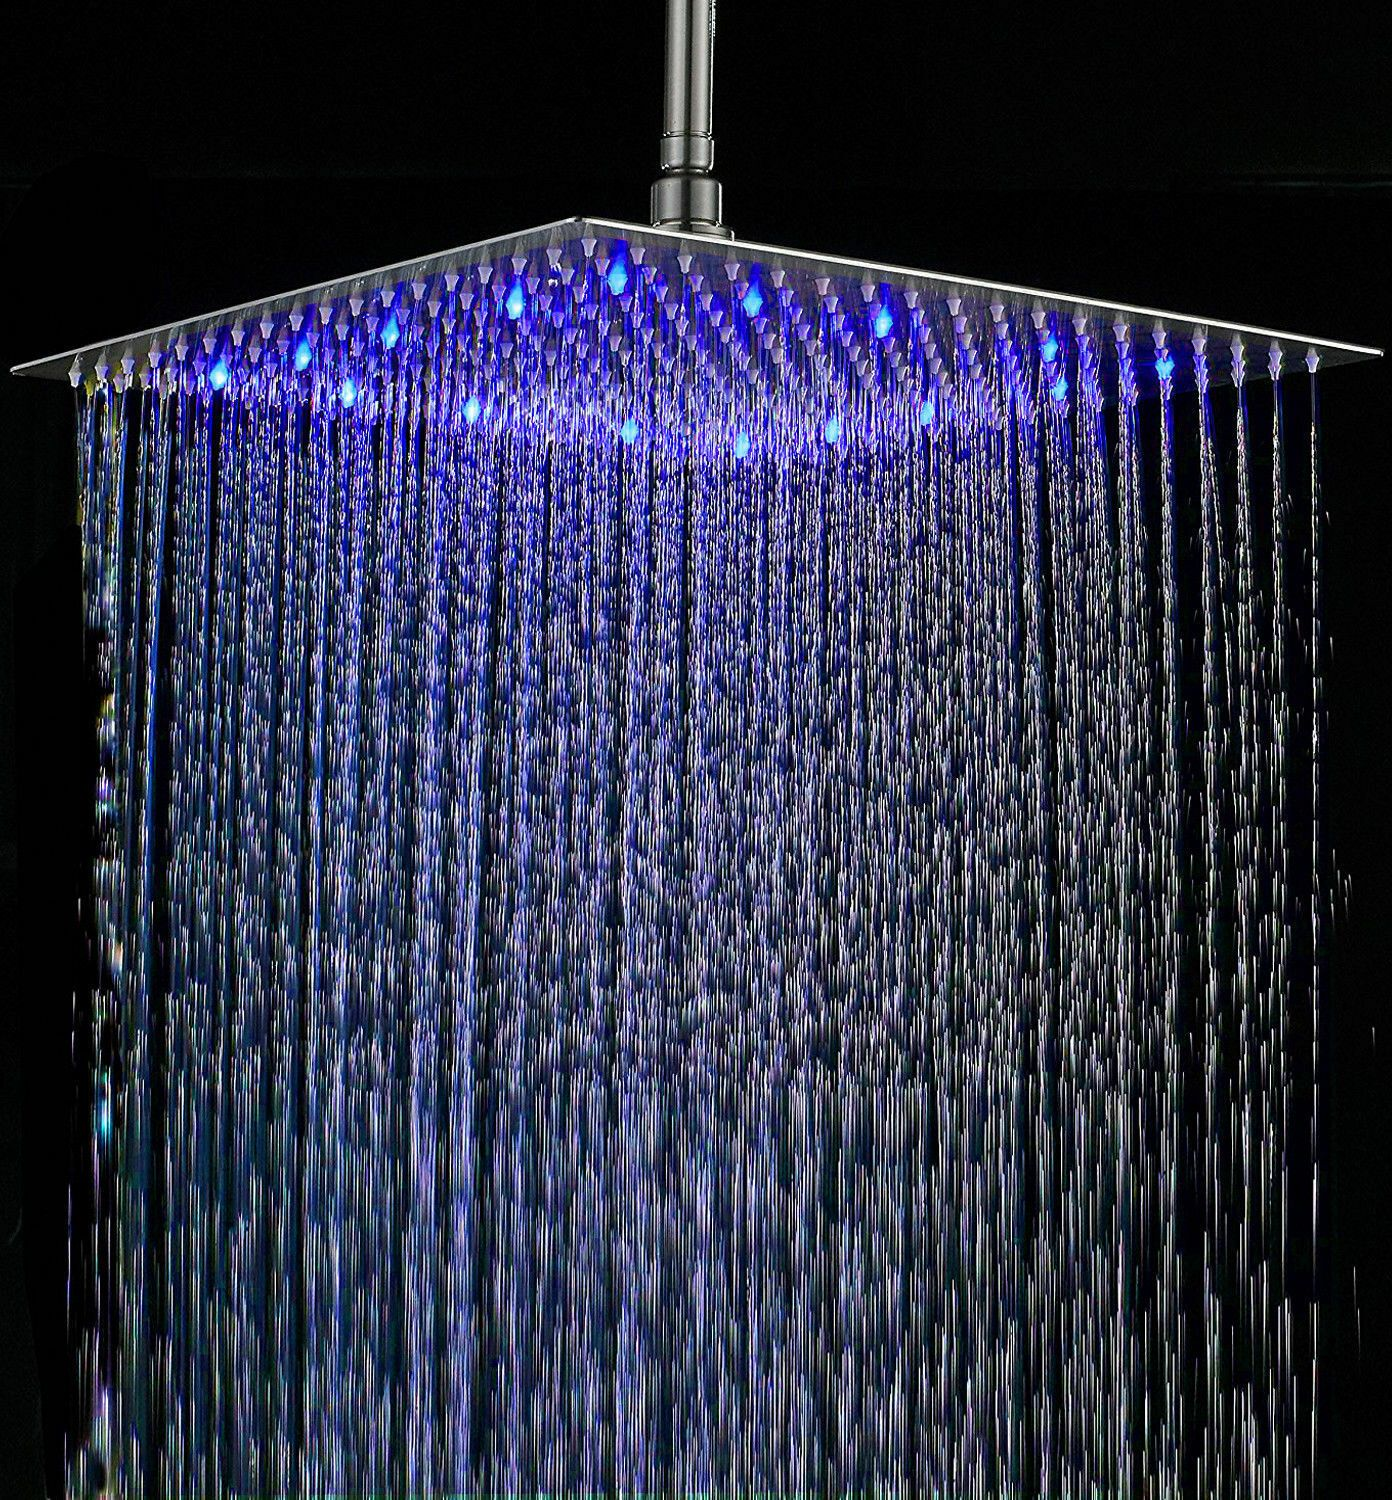 Led Change 16 Stainless Steel Rainfall Shower Head Top Sprayer Brushed Nickel Showers Ideas Of Shower Led Shower Head Rainfall Shower Head Rainfall Shower